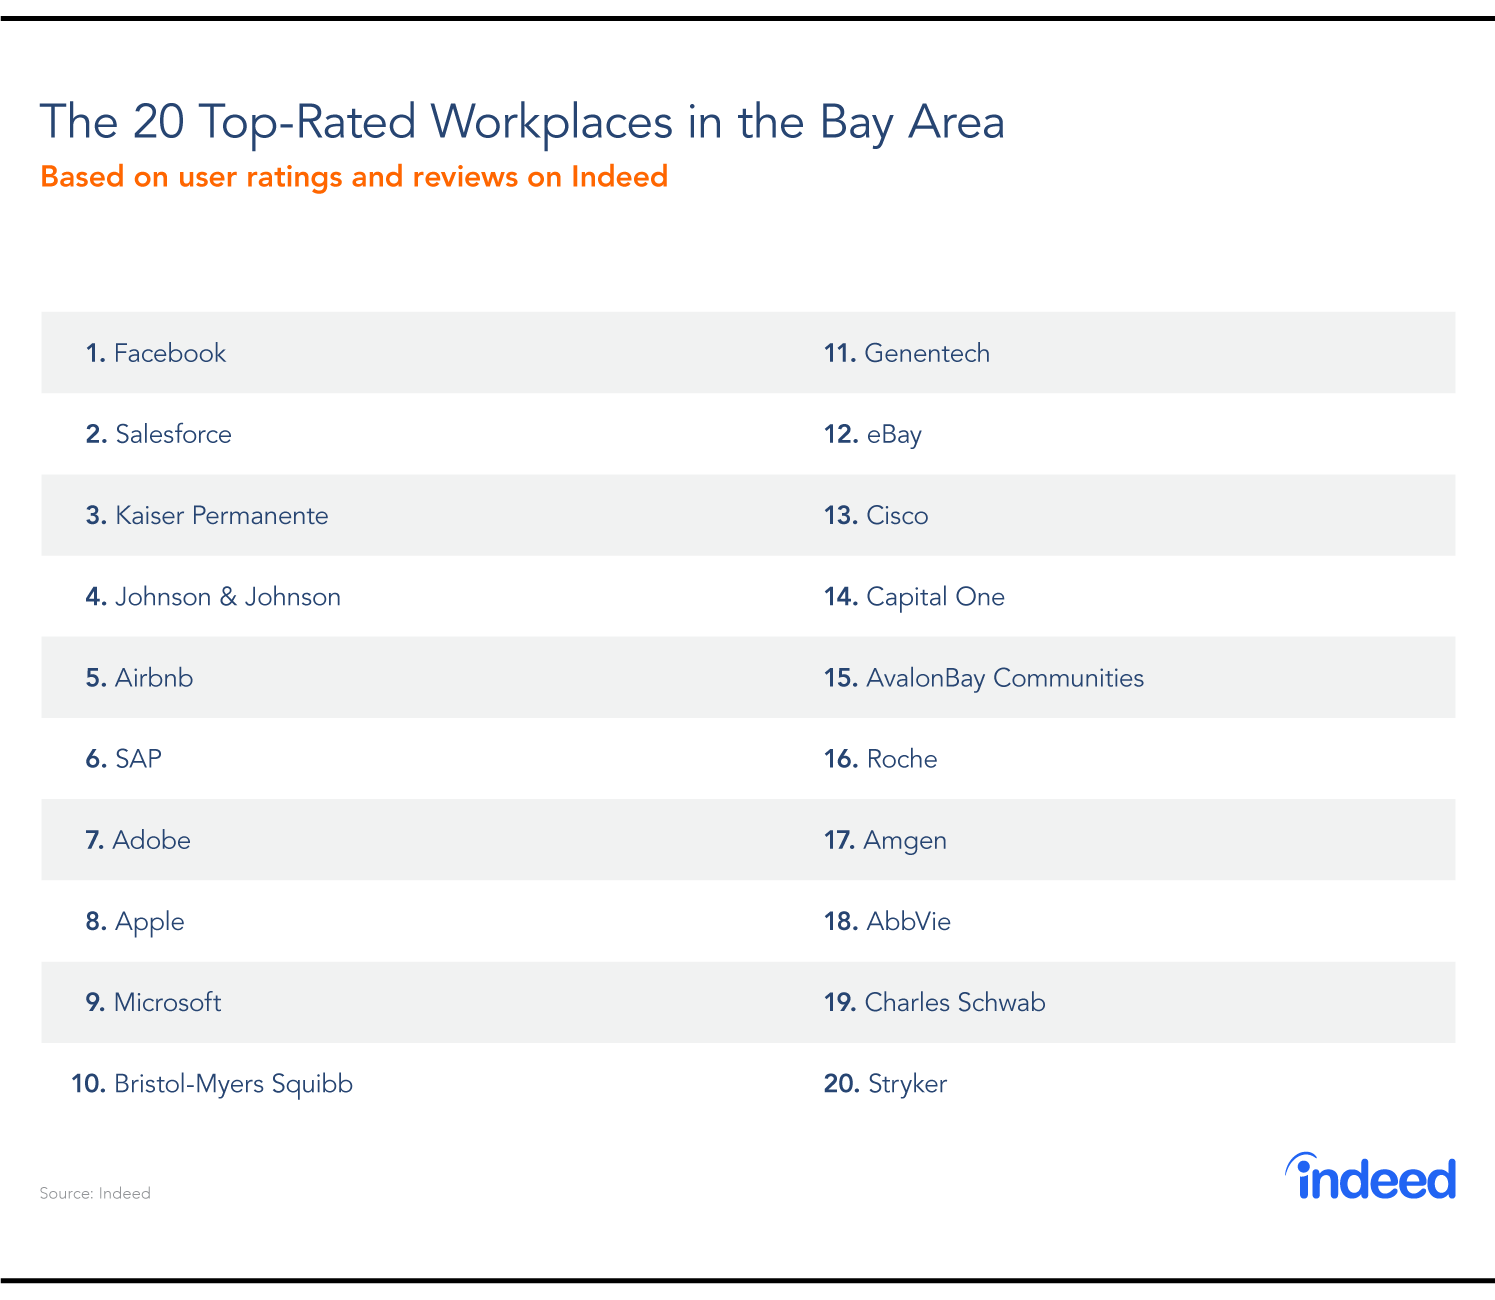 Table compiled of the 20 top-rated workplaces in the Bay Area for 2018.